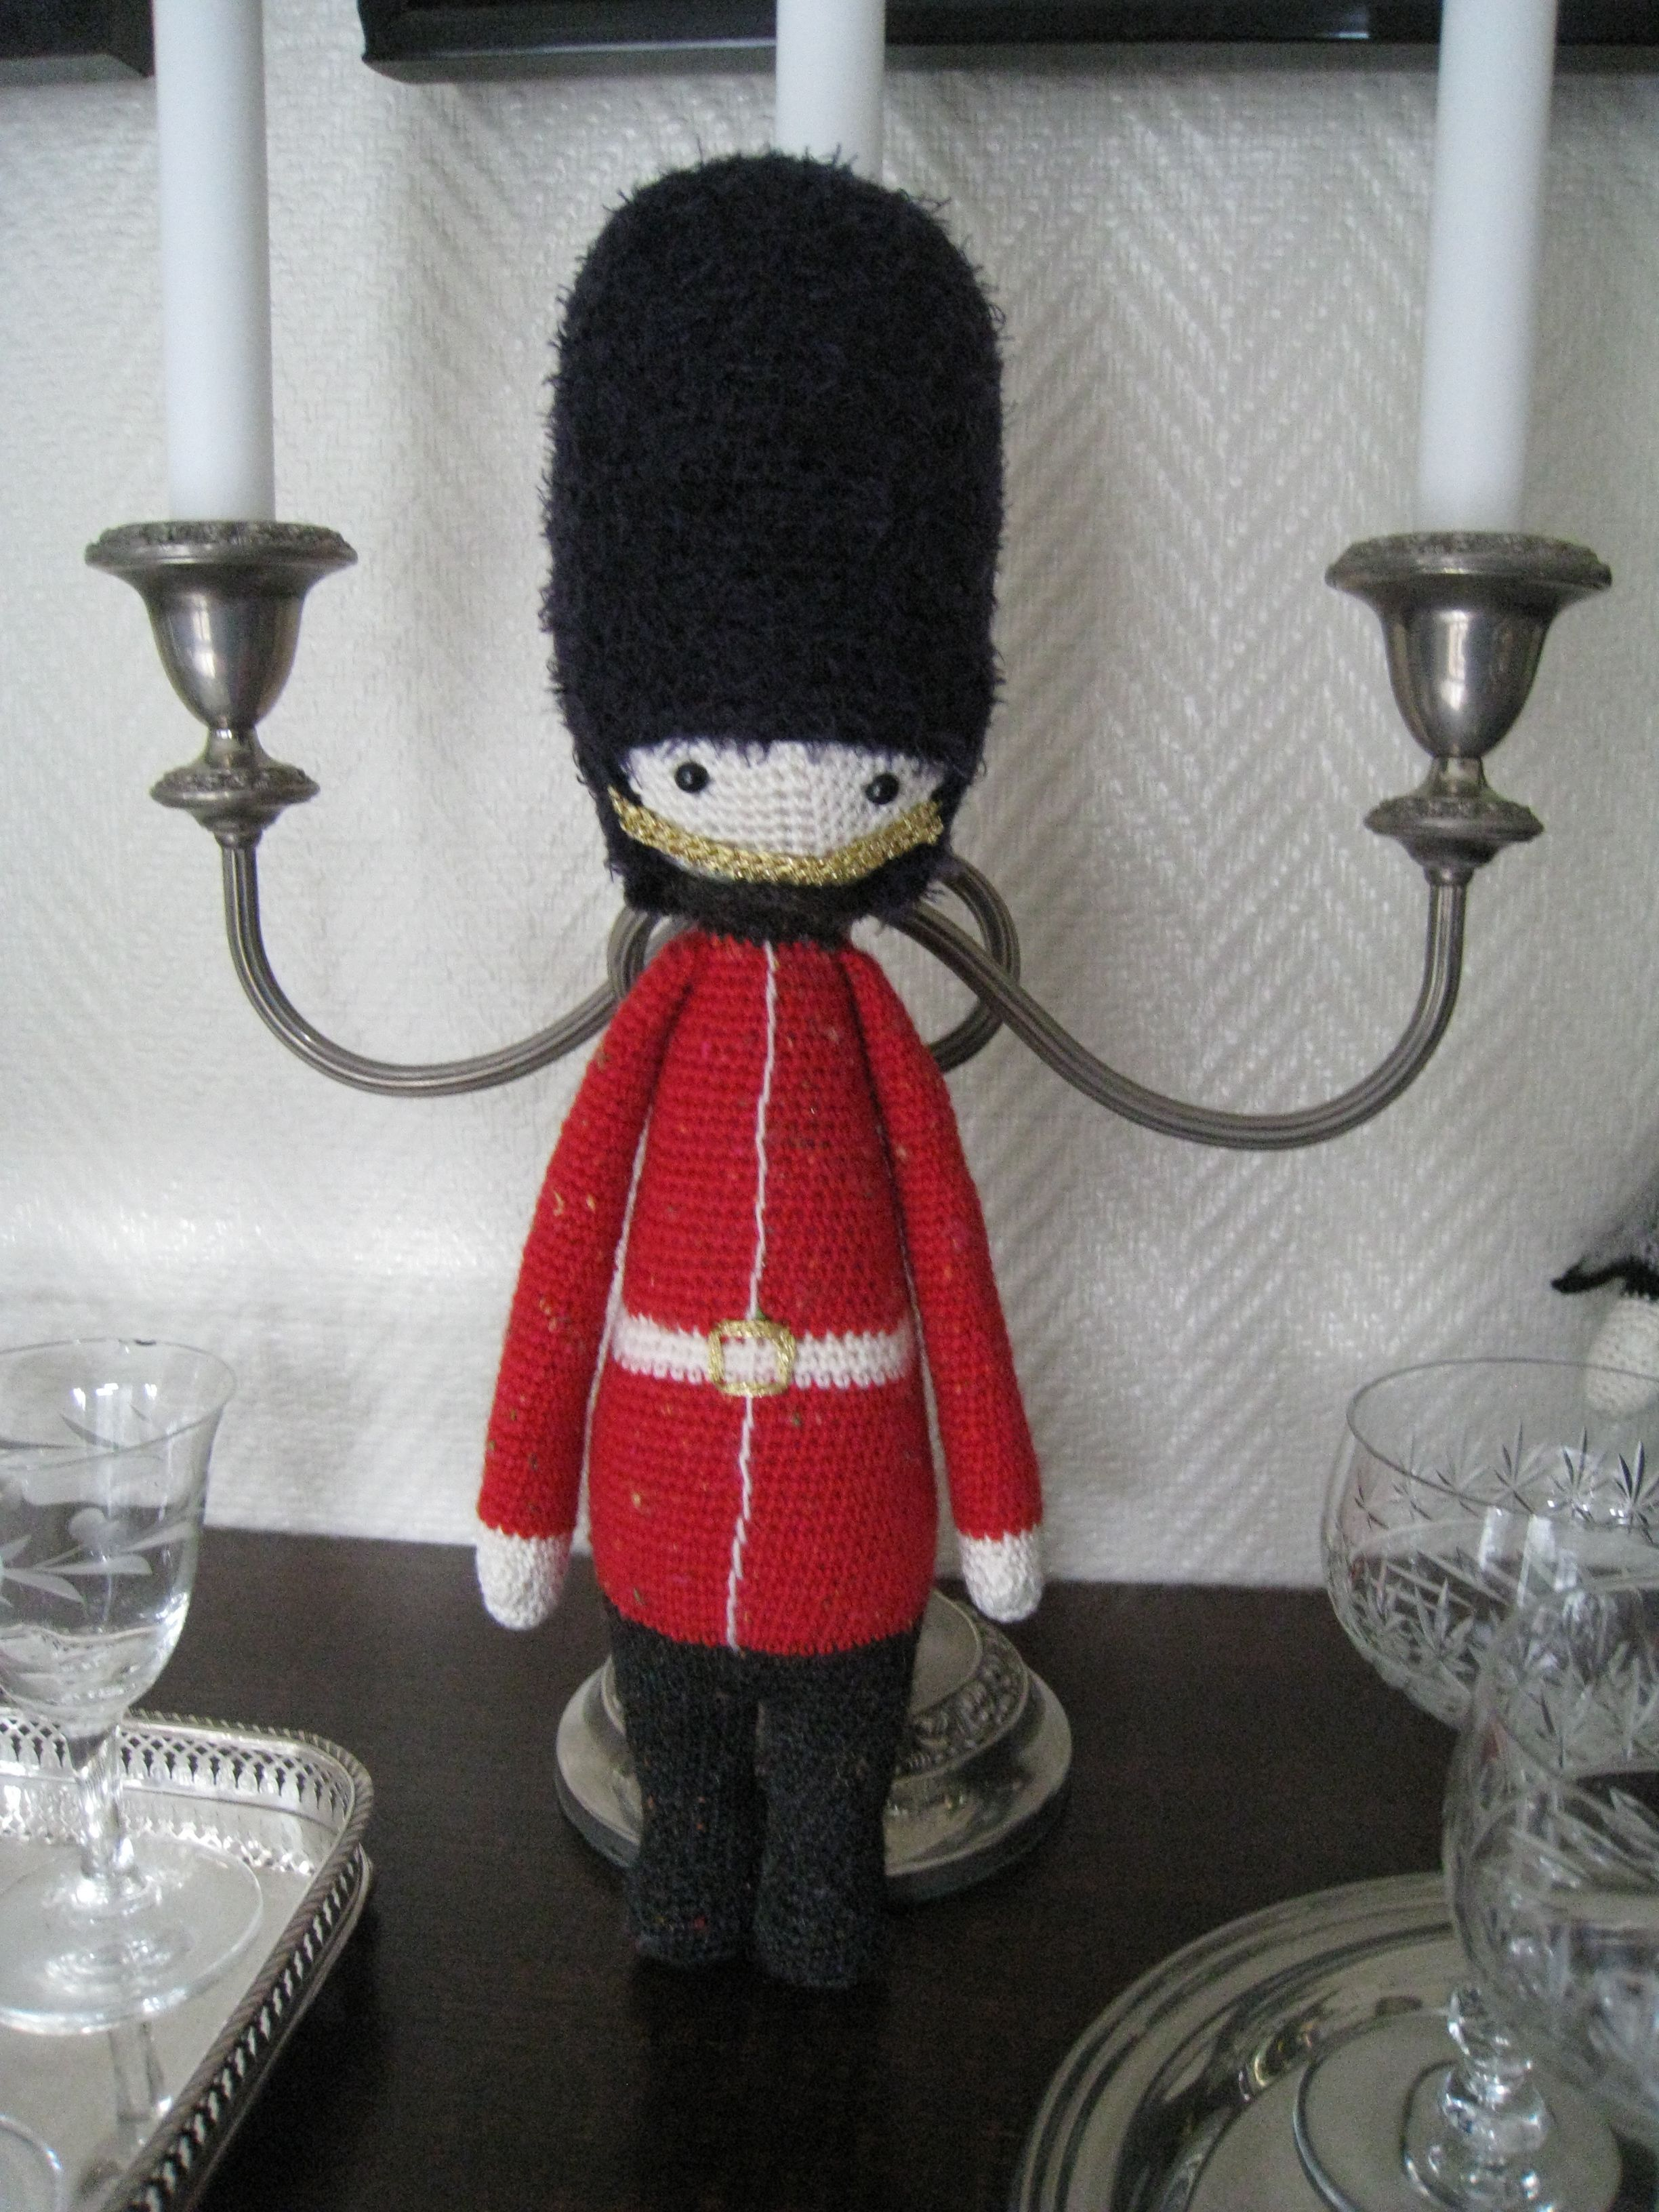 Life guard of the Queen made by Karin n. / crochet pattern by lalylala